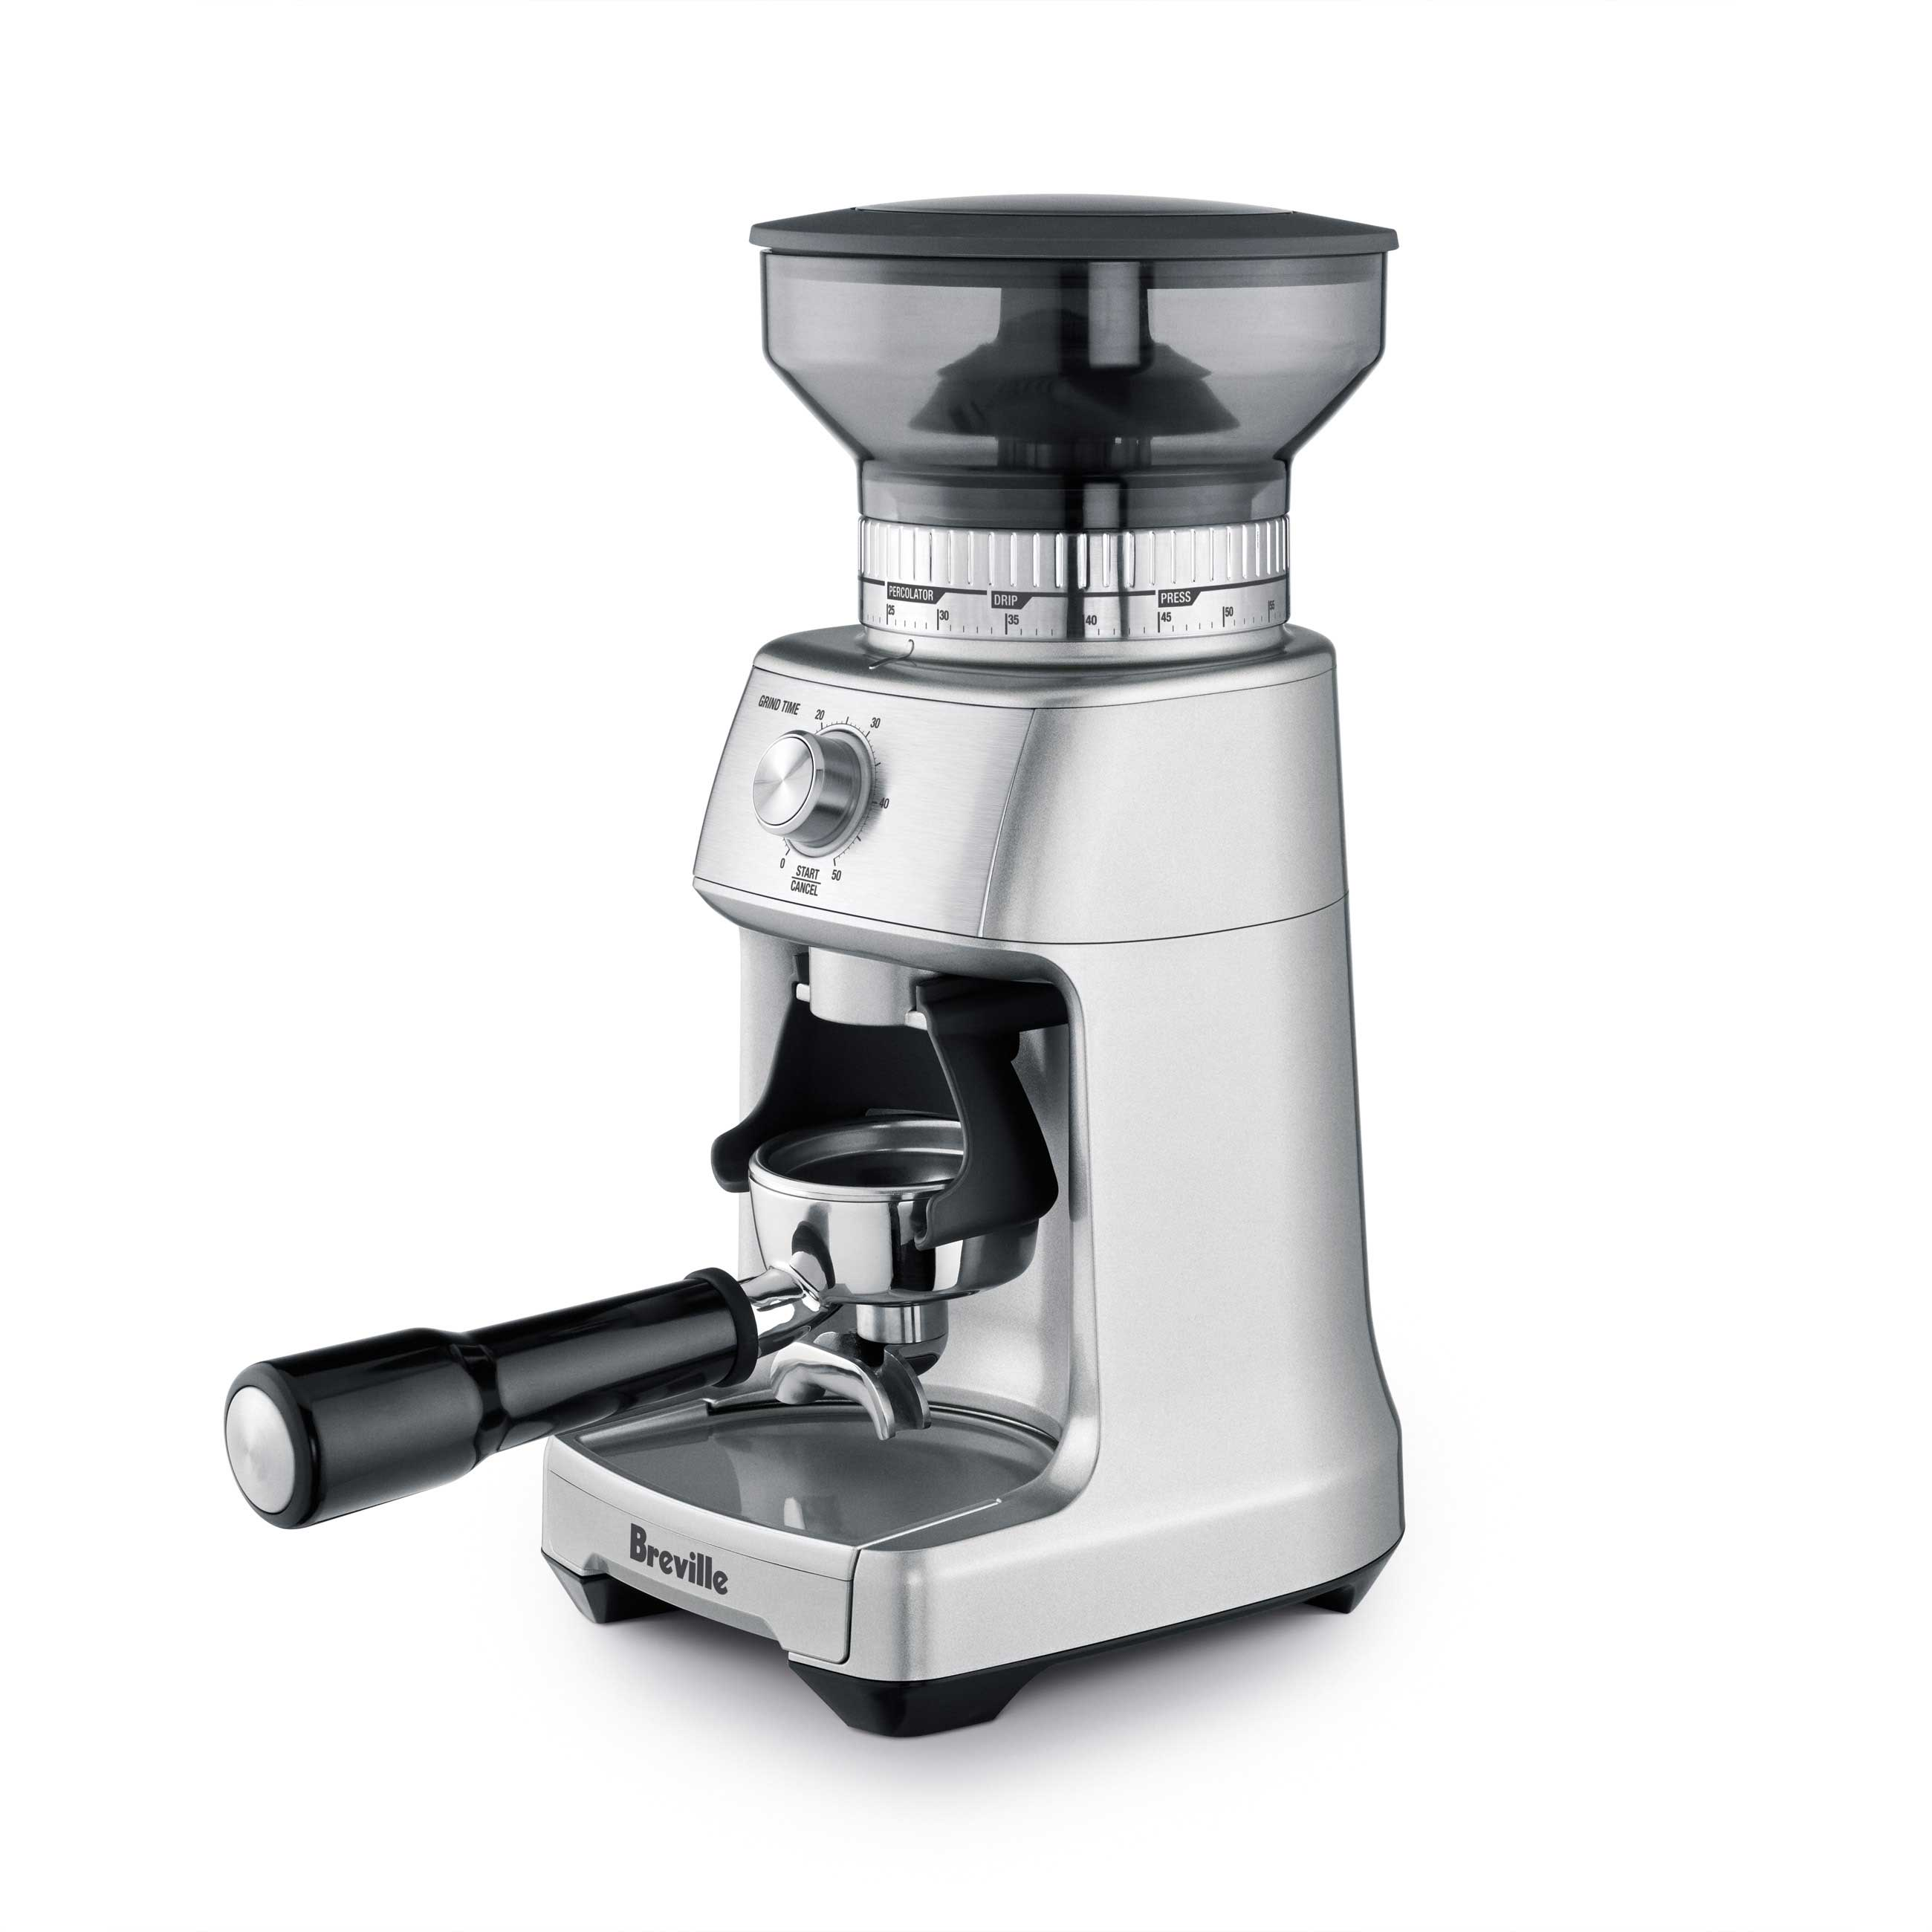 the Dose Control Pro Coffee Grinder in Brushed Stainless Steel side view